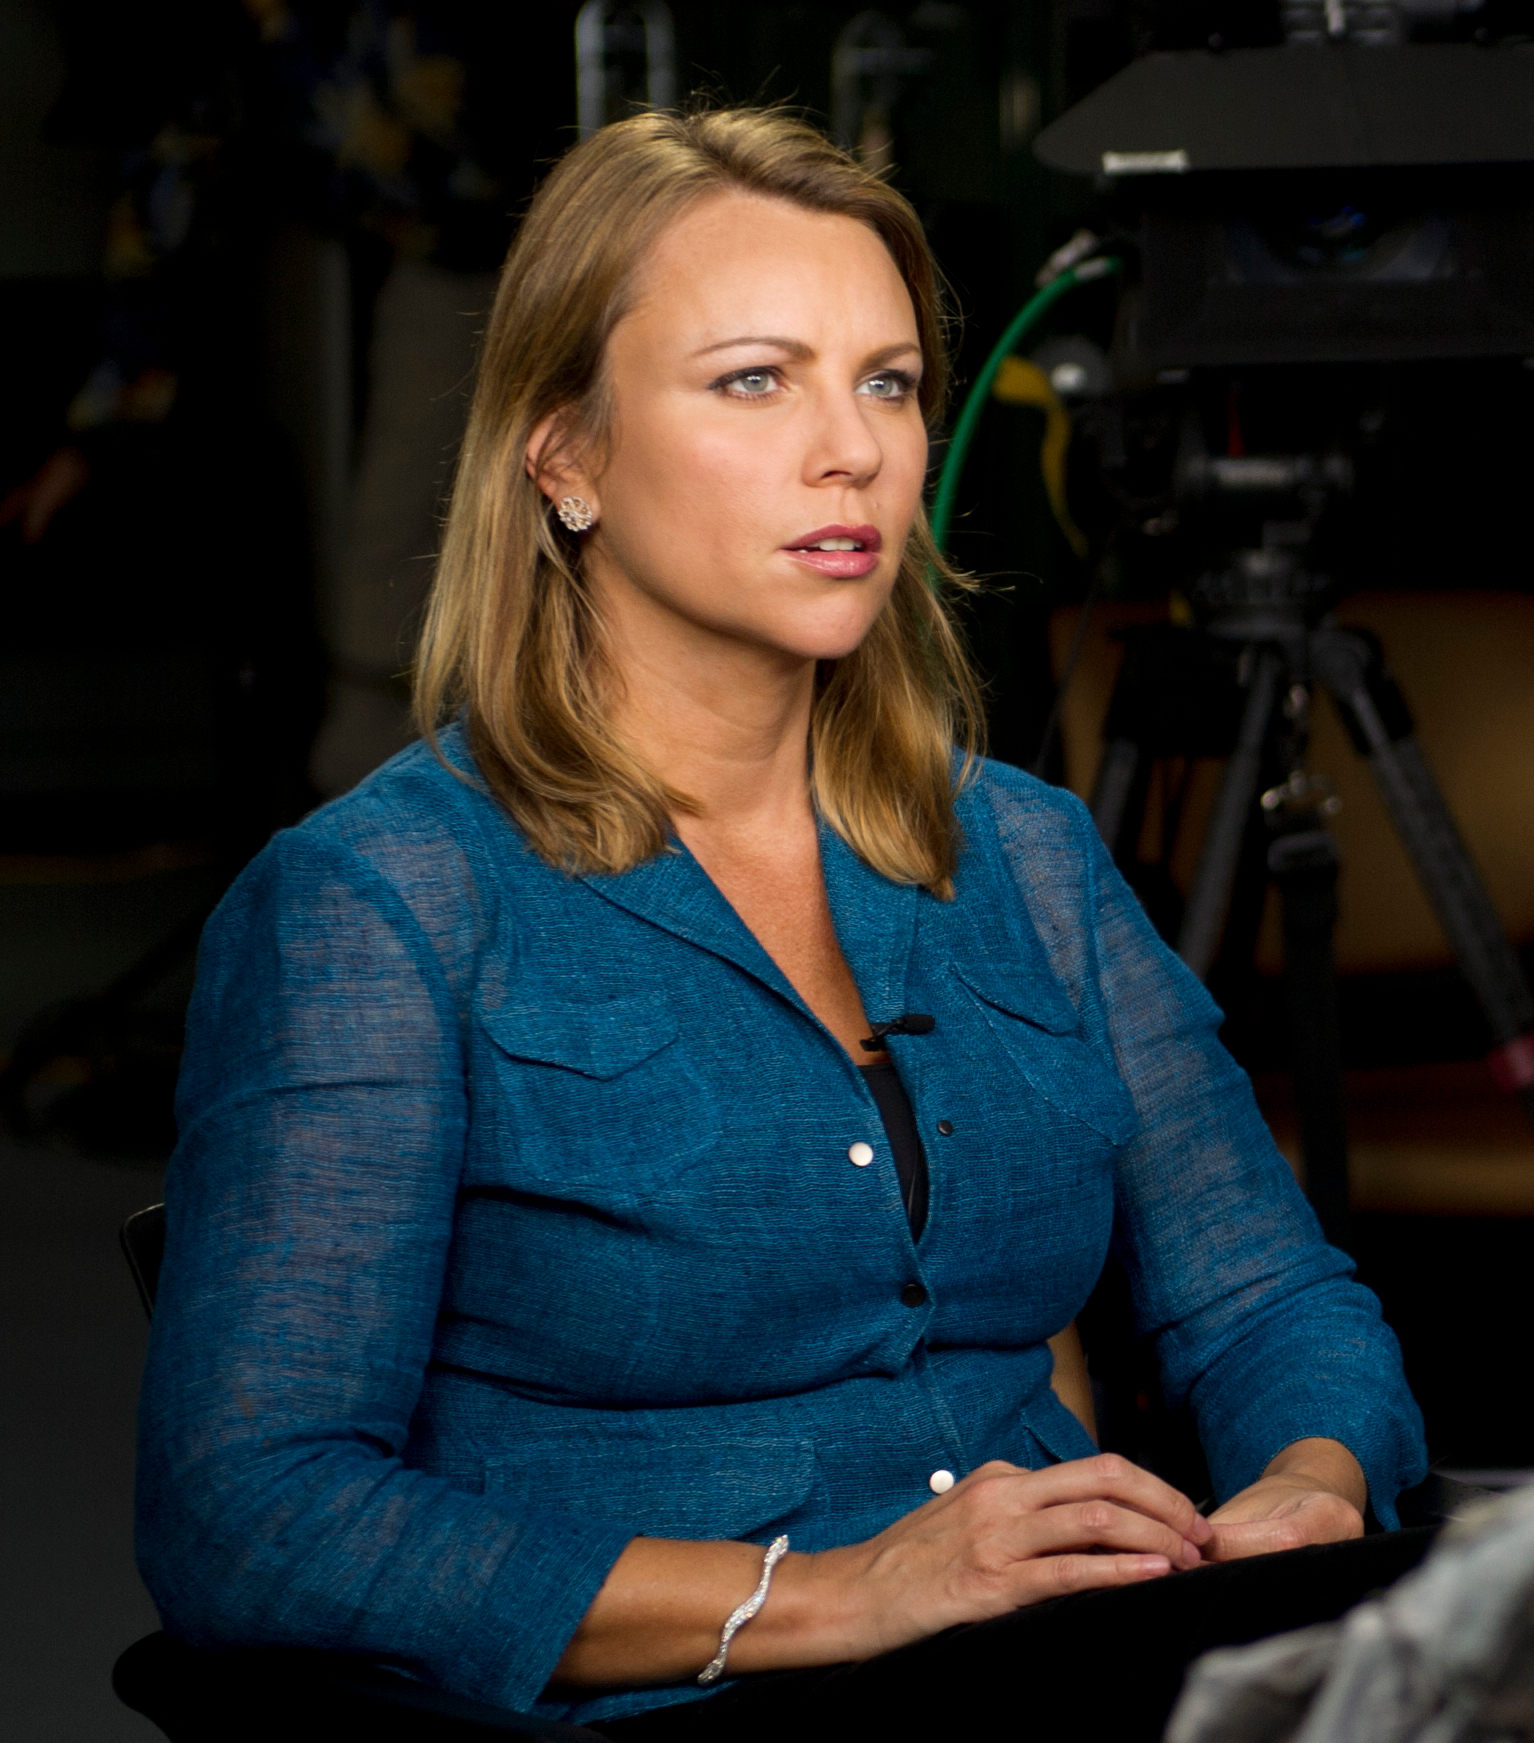 Lara Logan - Wikipedia